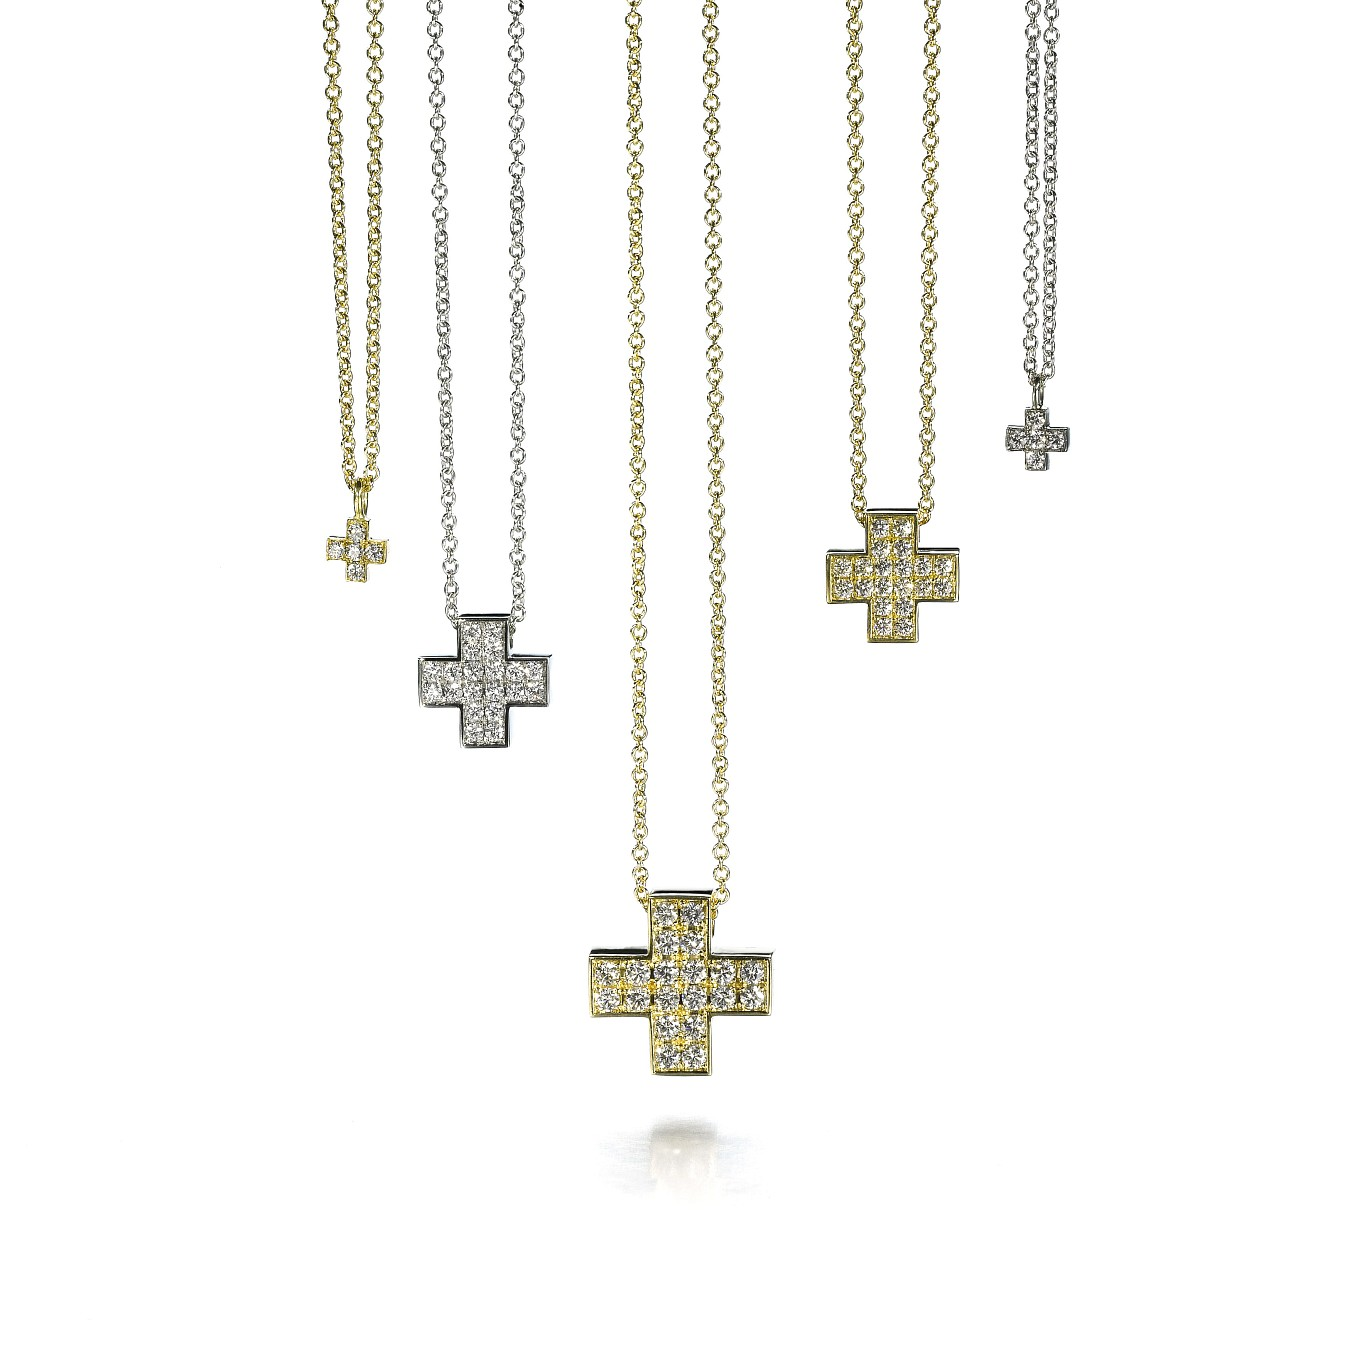 CLASSIC DIAMOND CROSSES IN WHITE OR YELLOW GOLD